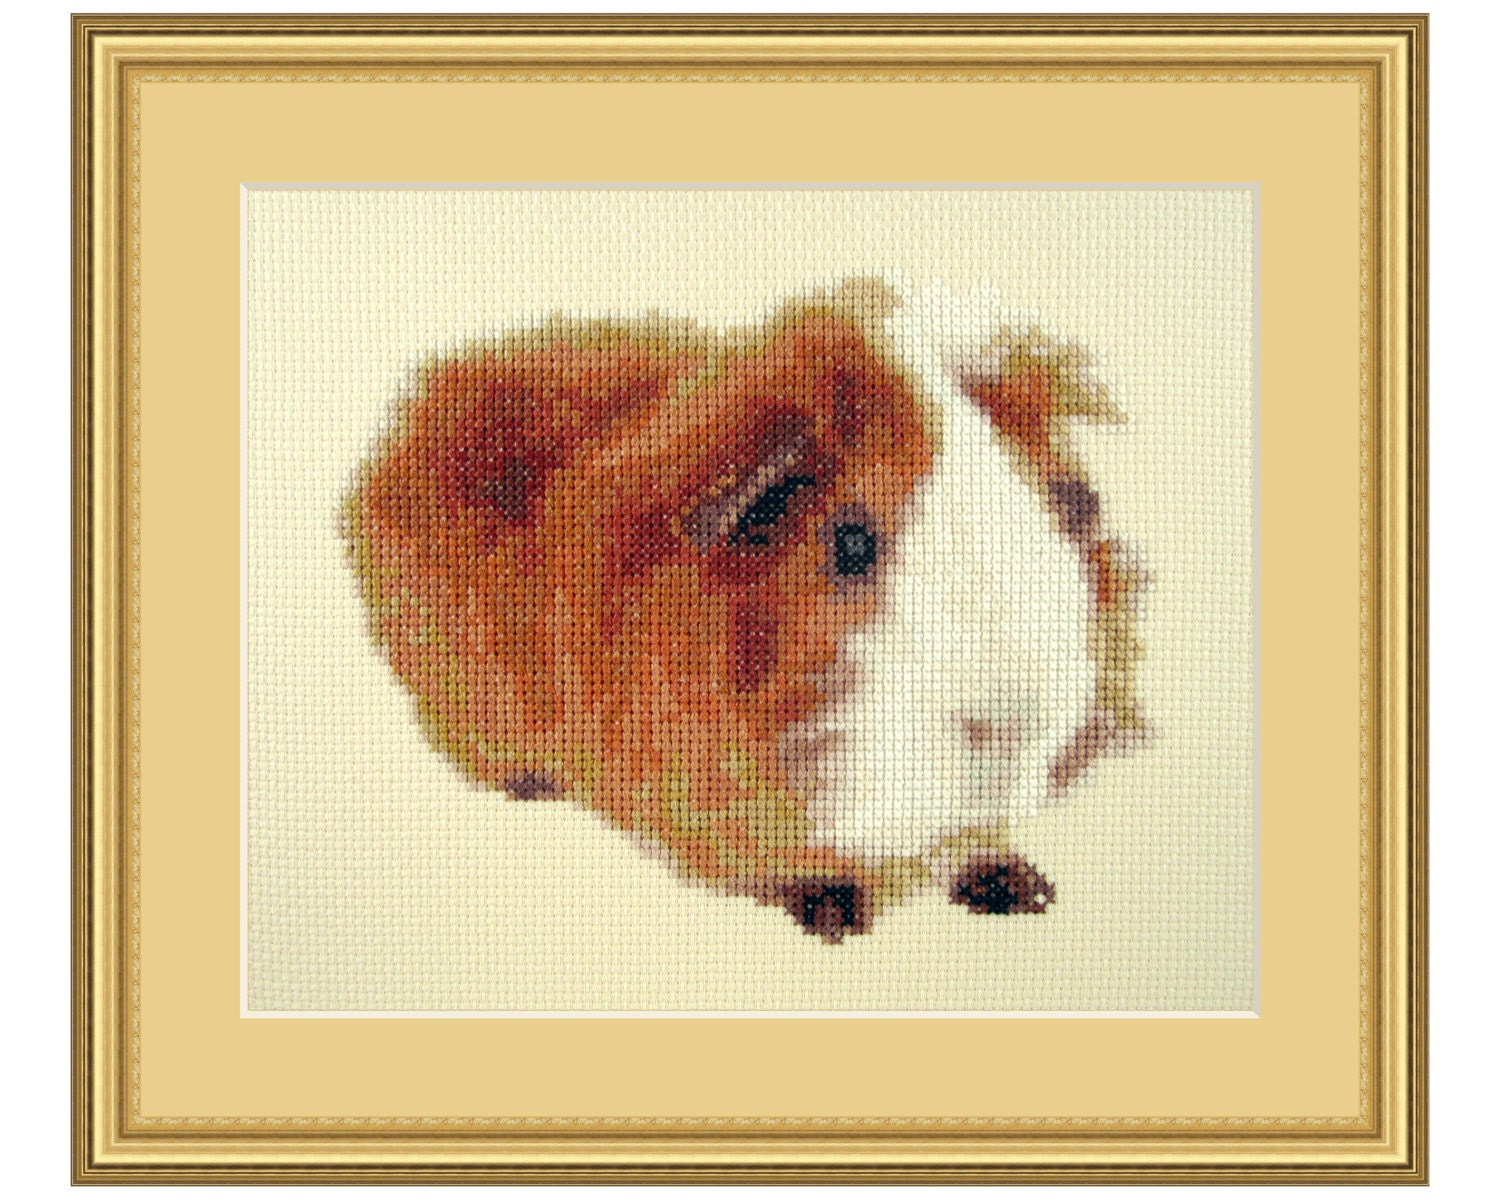 Guinea Pig Cross Stitch Patterns Www Topsimages Com